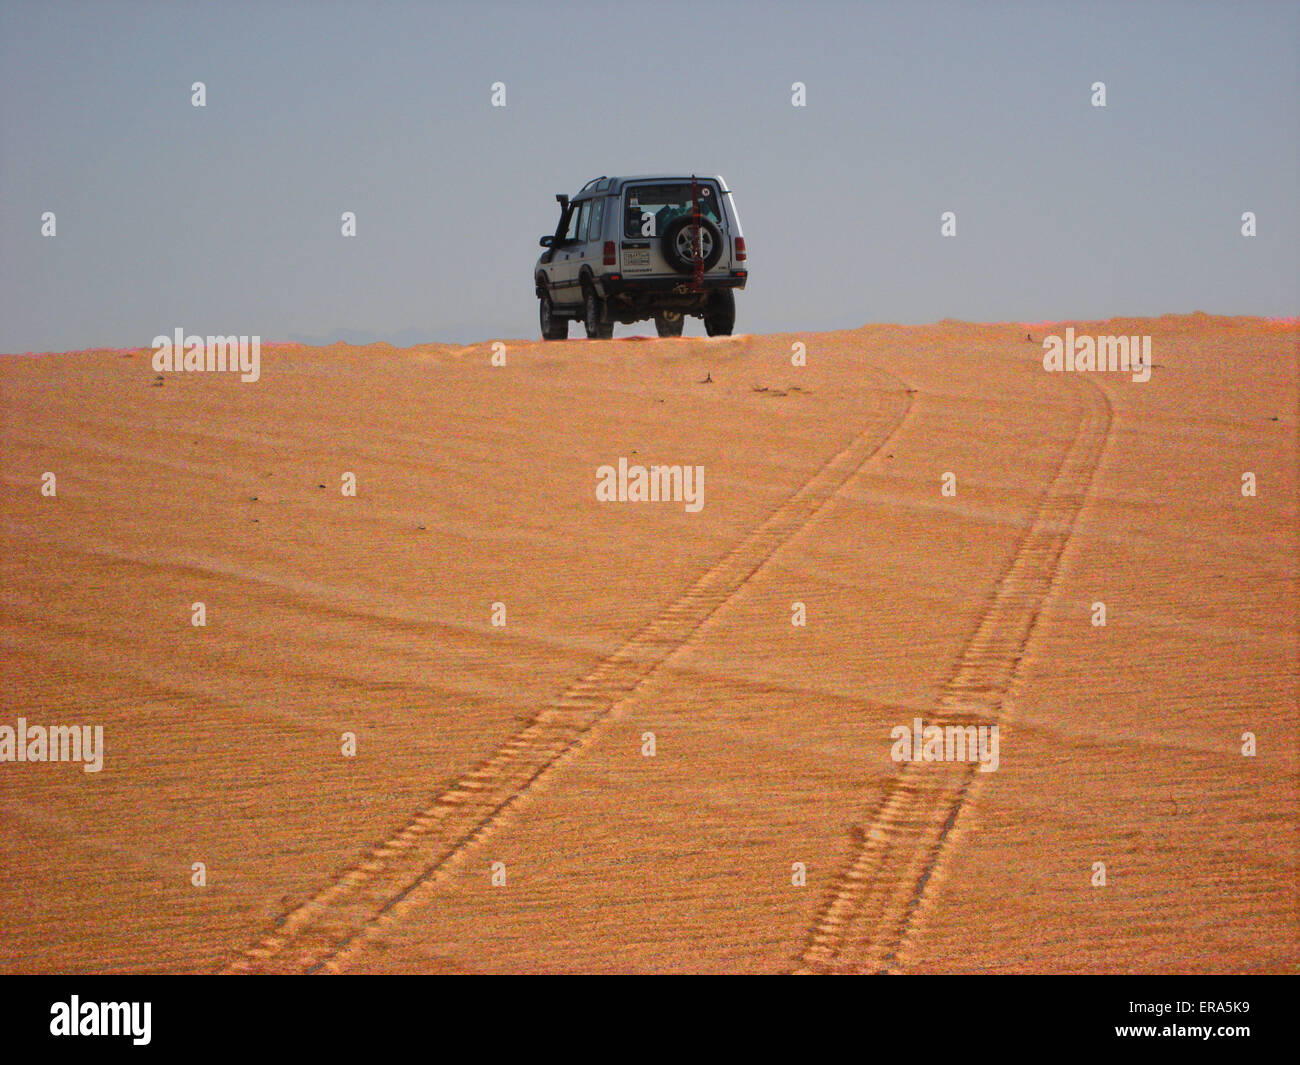 A Landrover on a sand dune in the inland sea Qatar - Stock Image